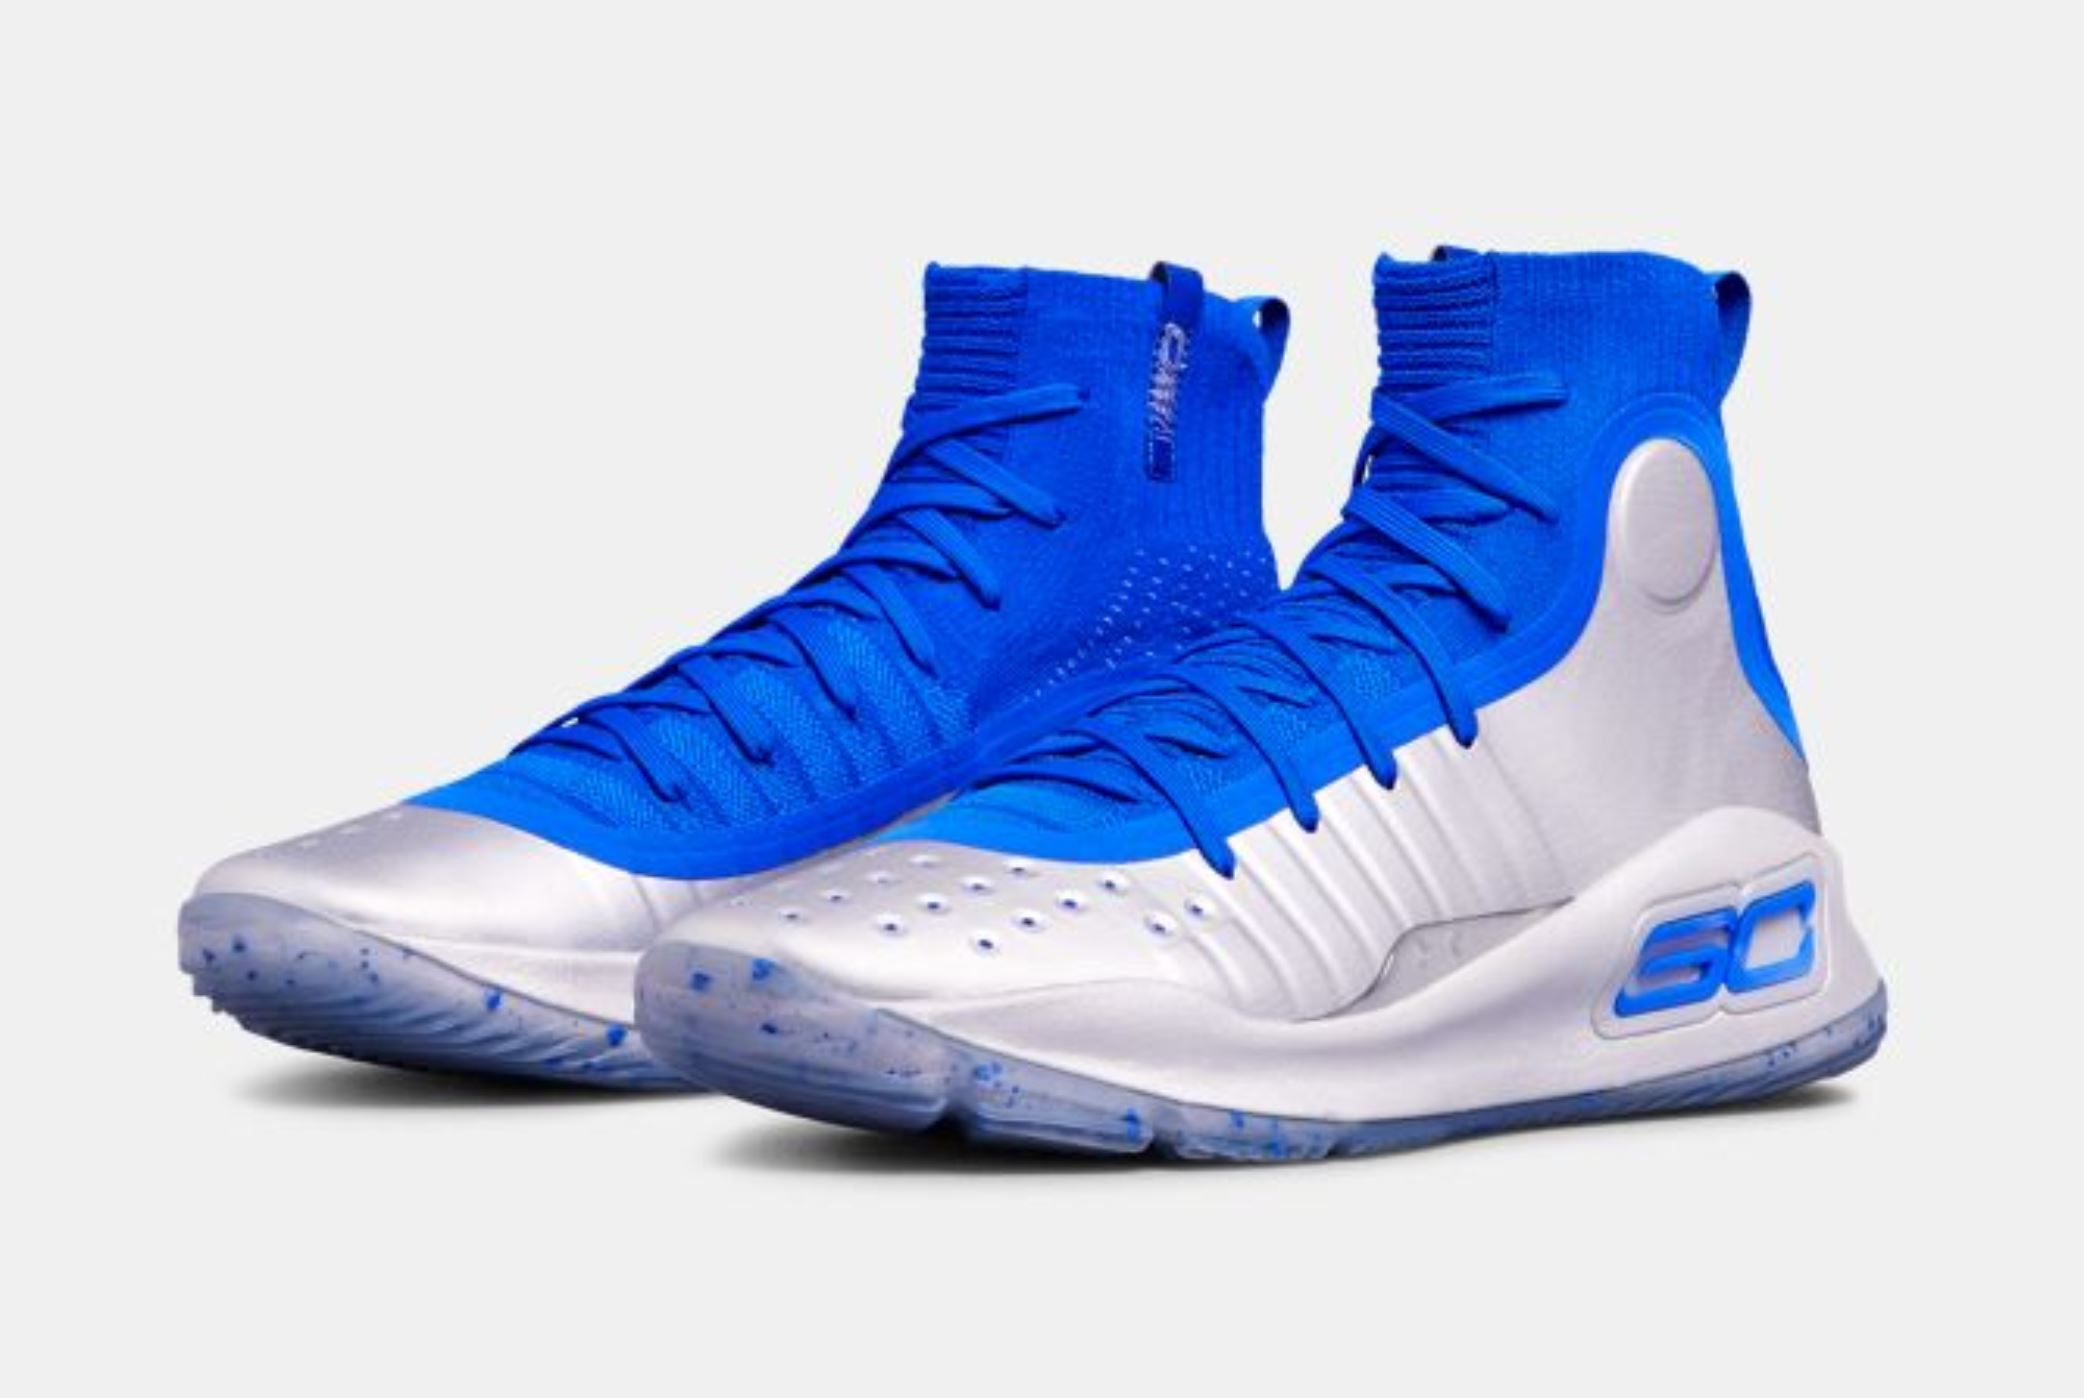 under armour curry 4 royal metallic silver 4